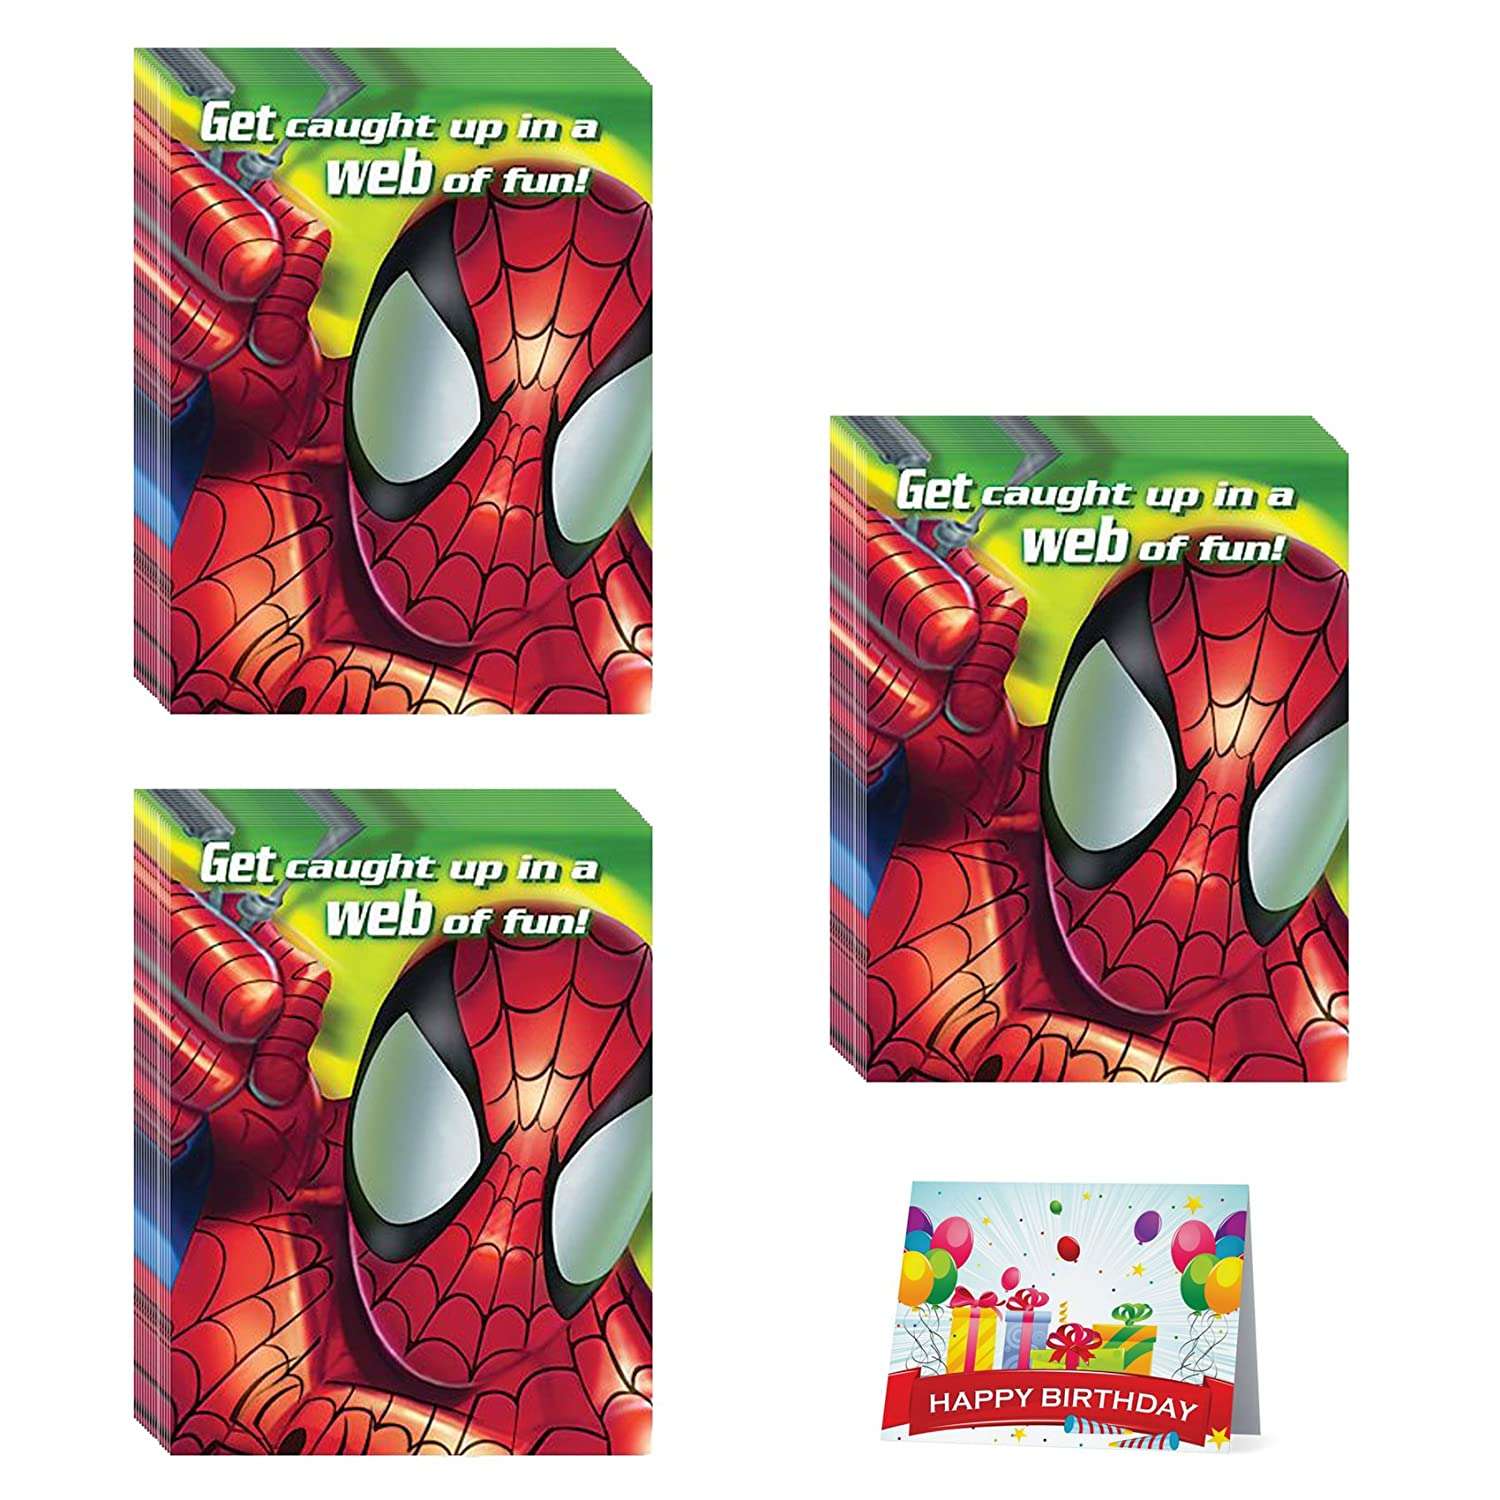 Amazon.com: Spider-man Birthday Party Invitations Bundle Pack of 24 ...